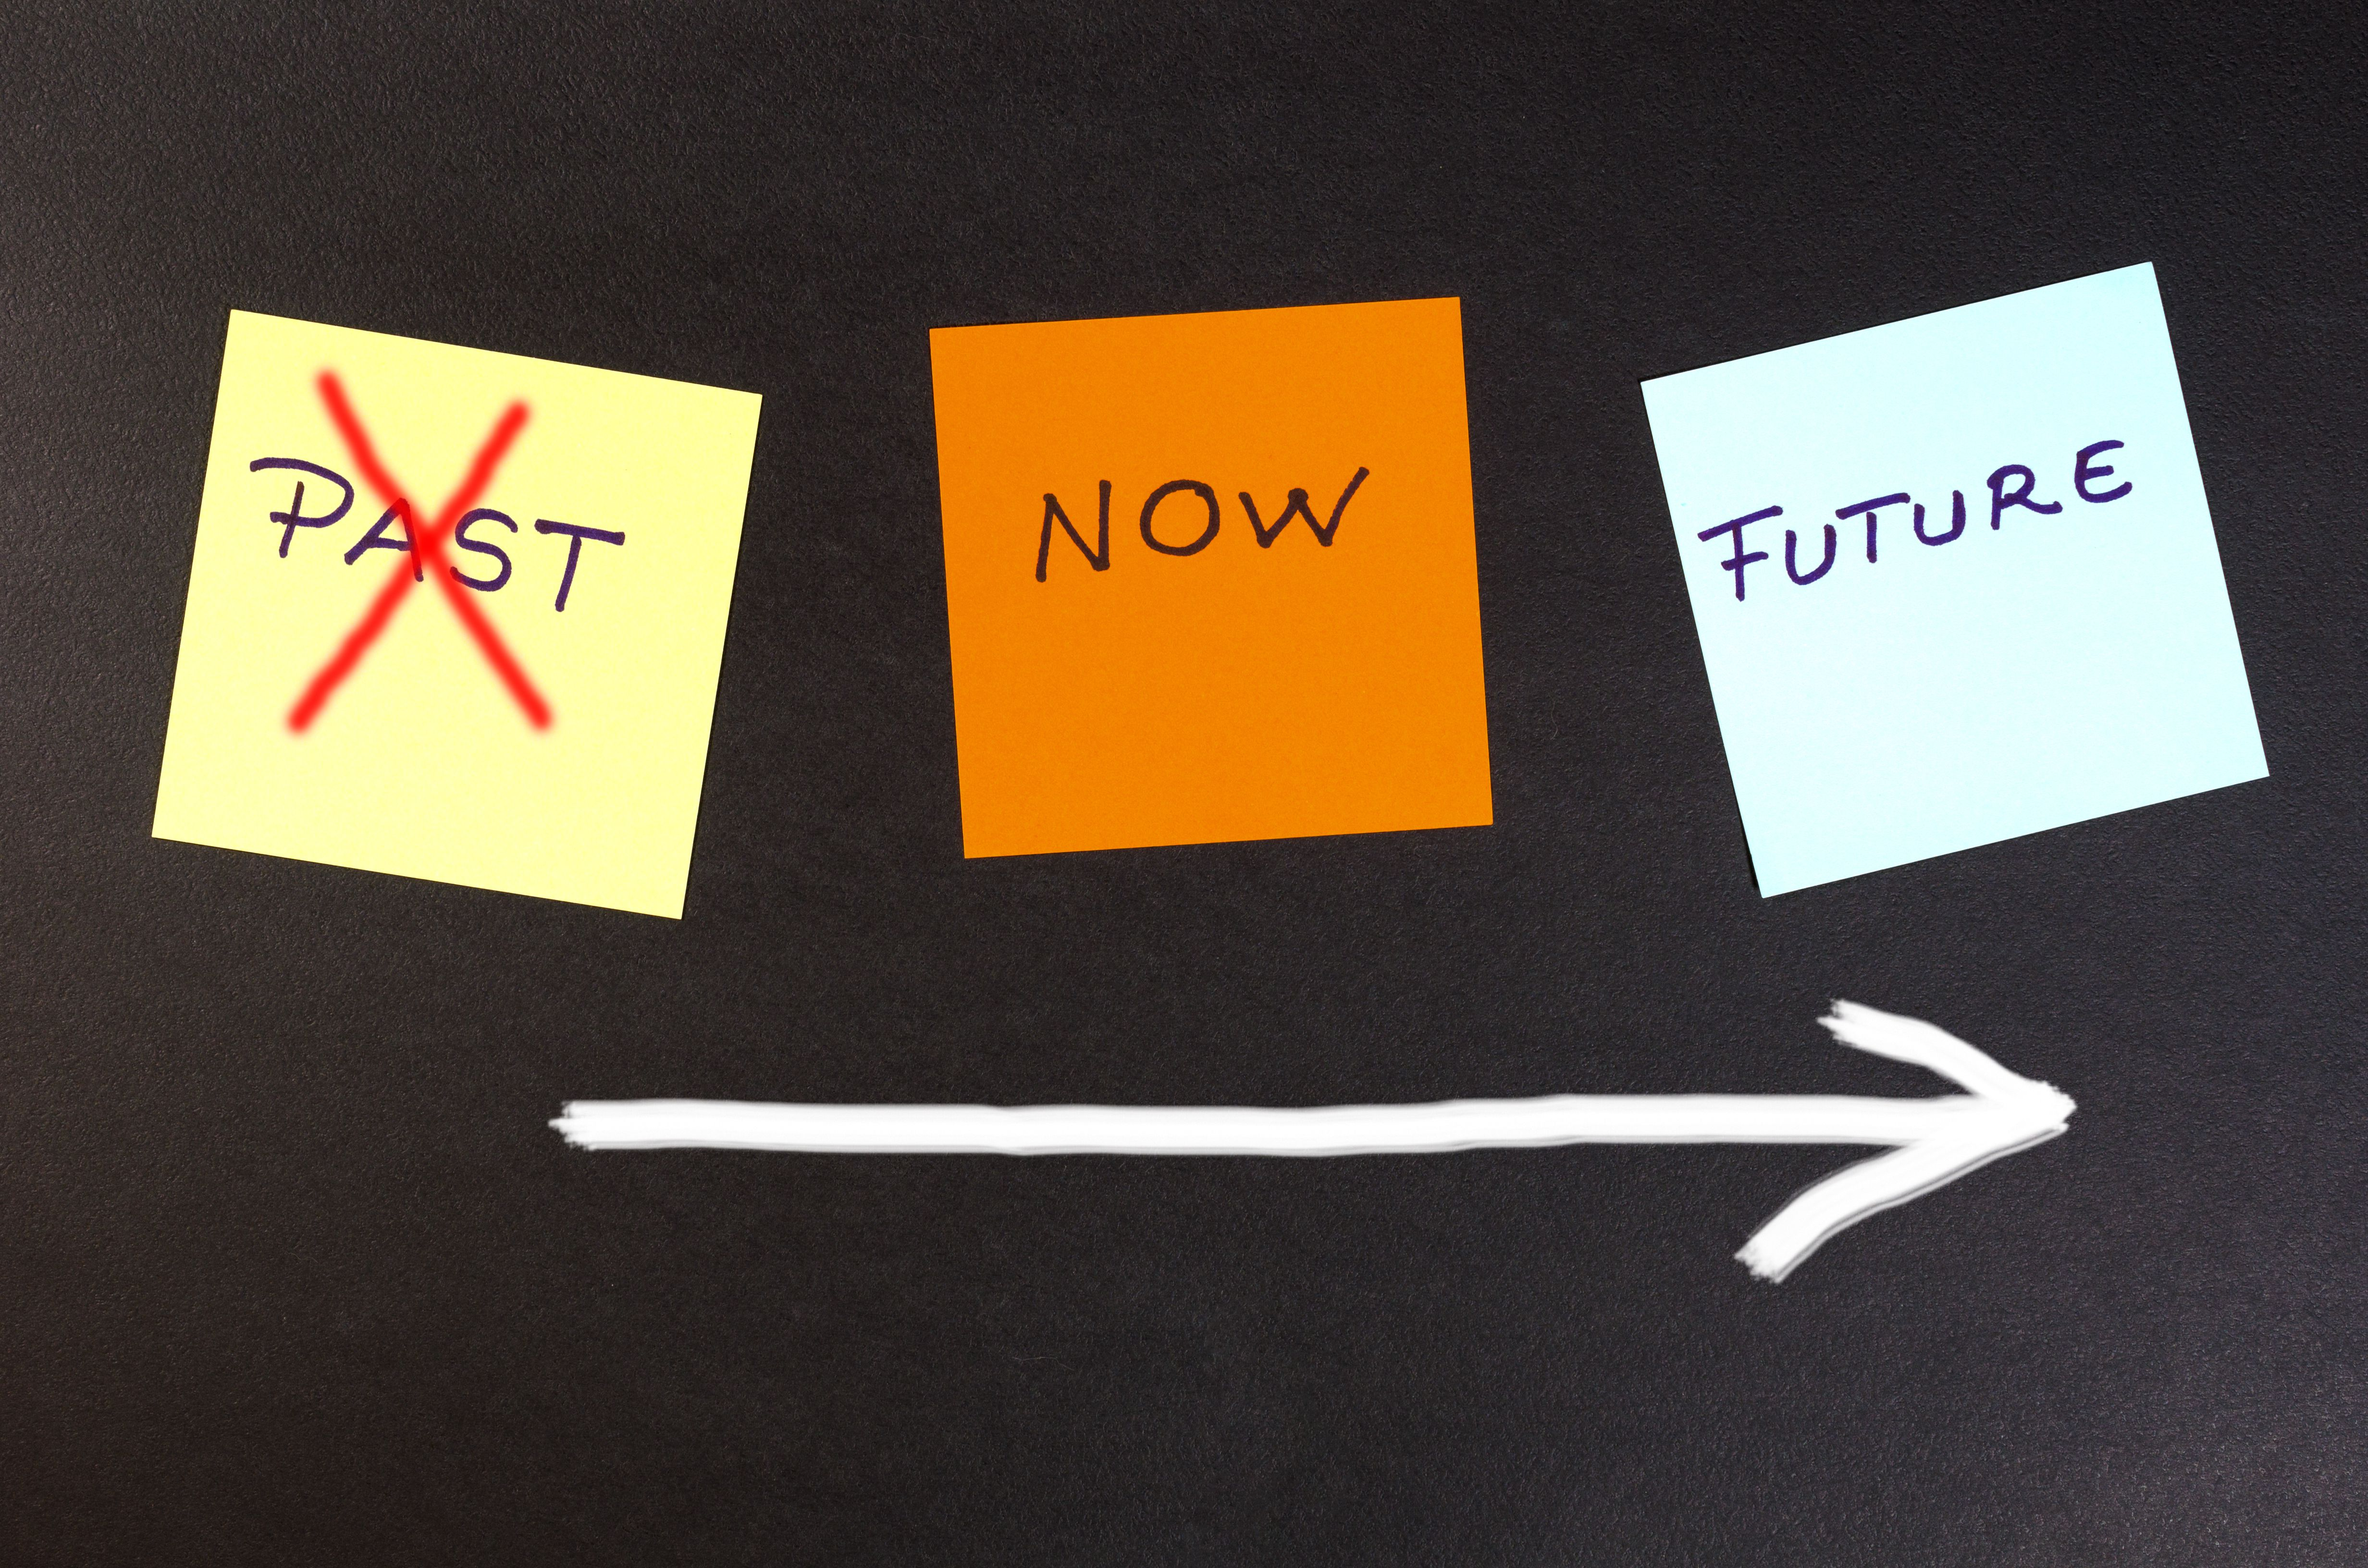 Post-it notes reading past, now, and future